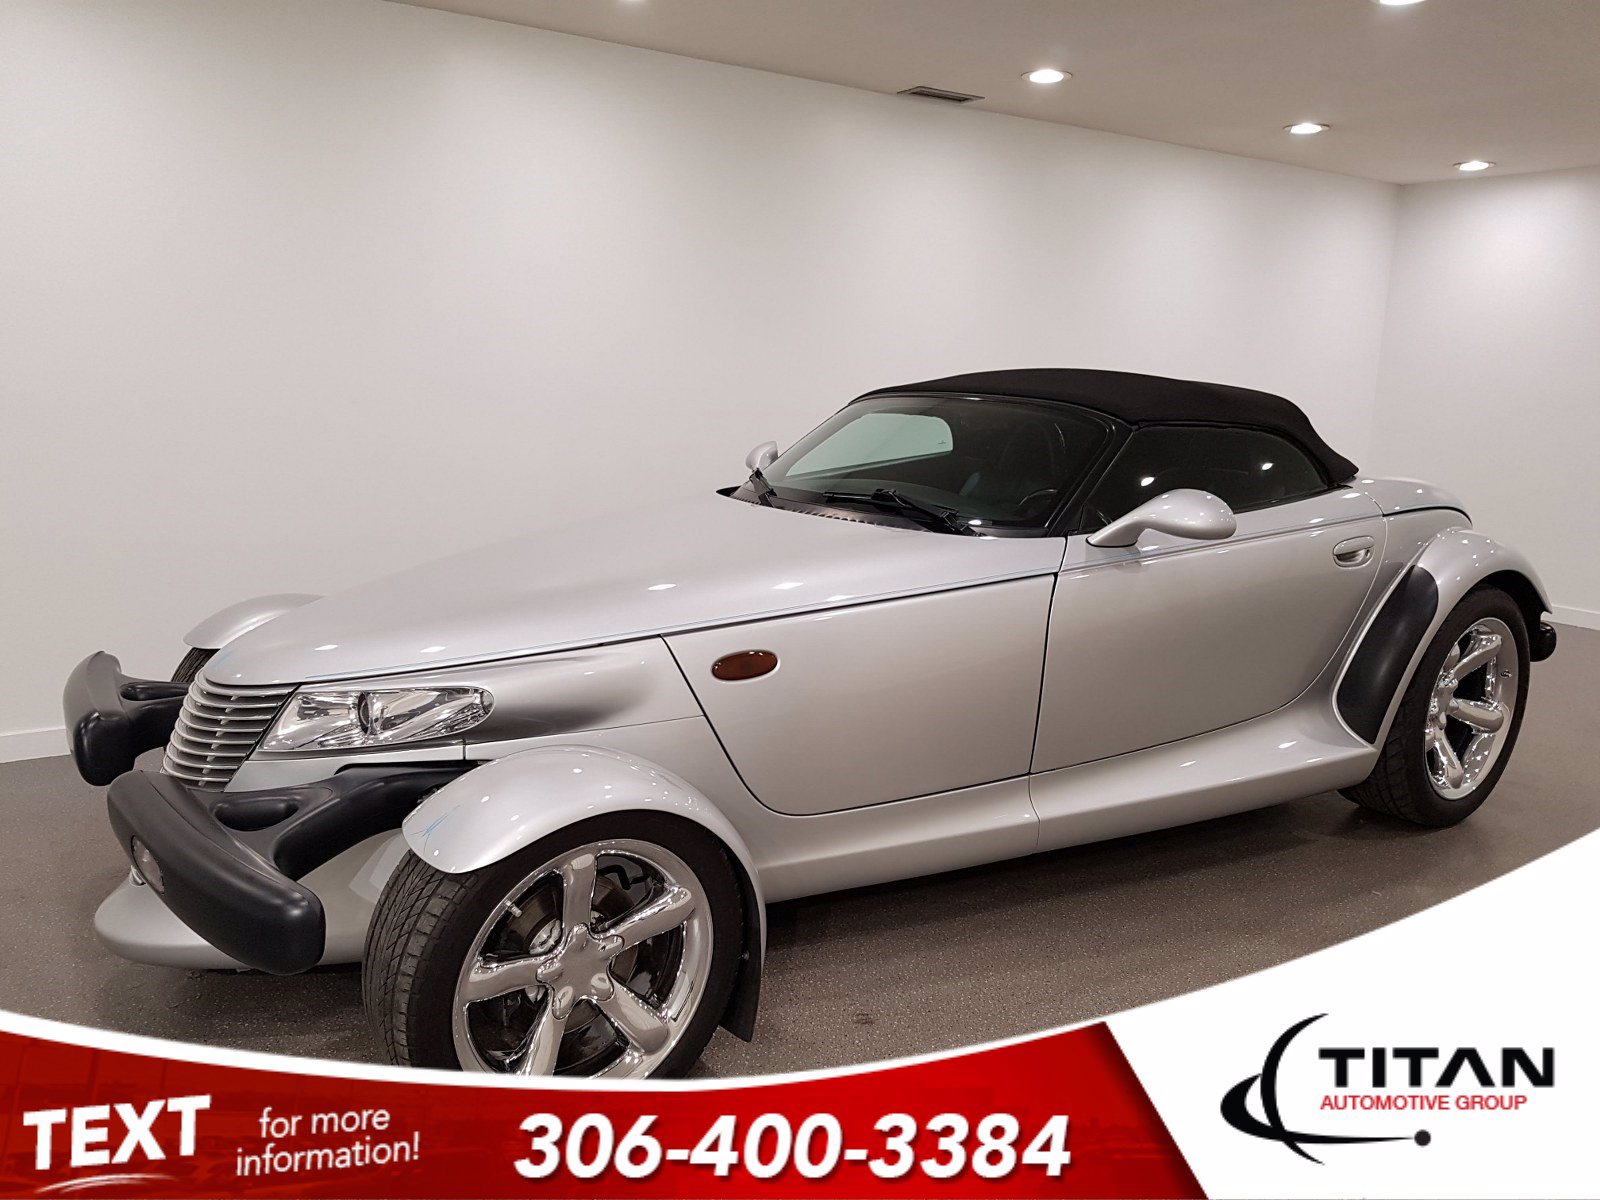 Pre-Owned 2000 Plymouth Prowler 3.5 L V6 253HP | Convertible | Hot Rod | Bright Silver Metallic | Rare